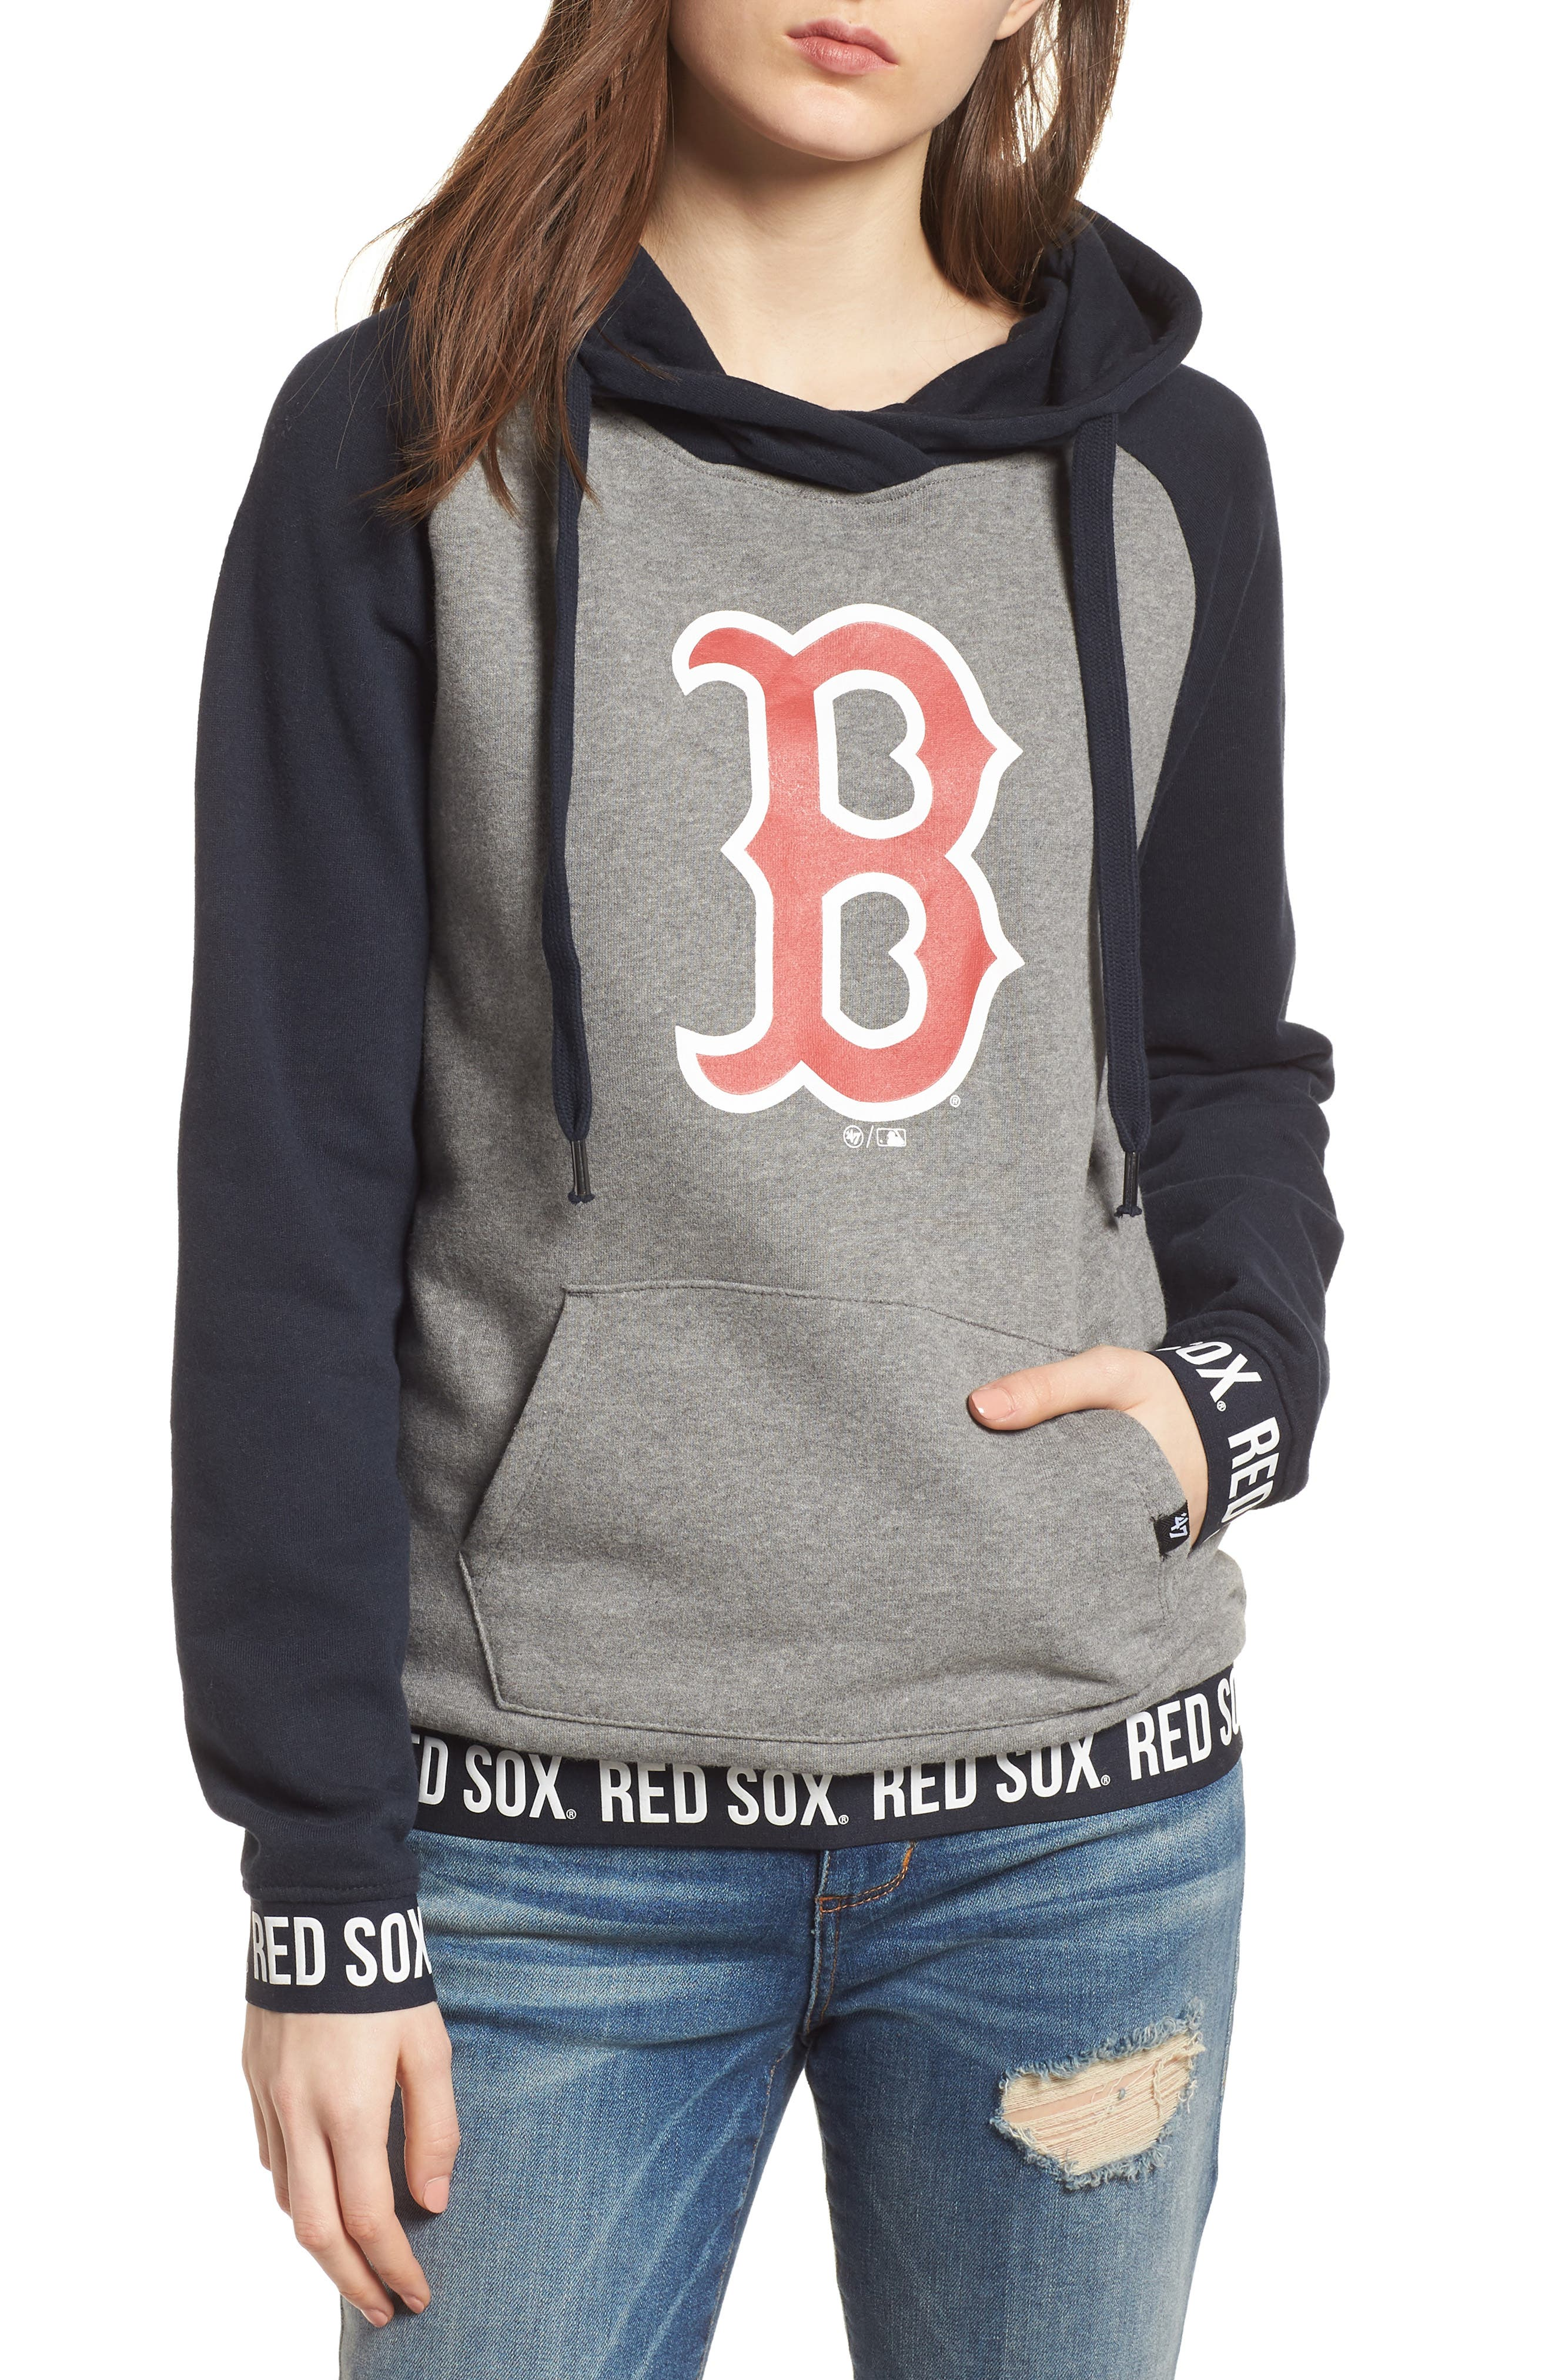 Encore Revolve Boston Red Sox Hoodie,                             Main thumbnail 1, color,                             026